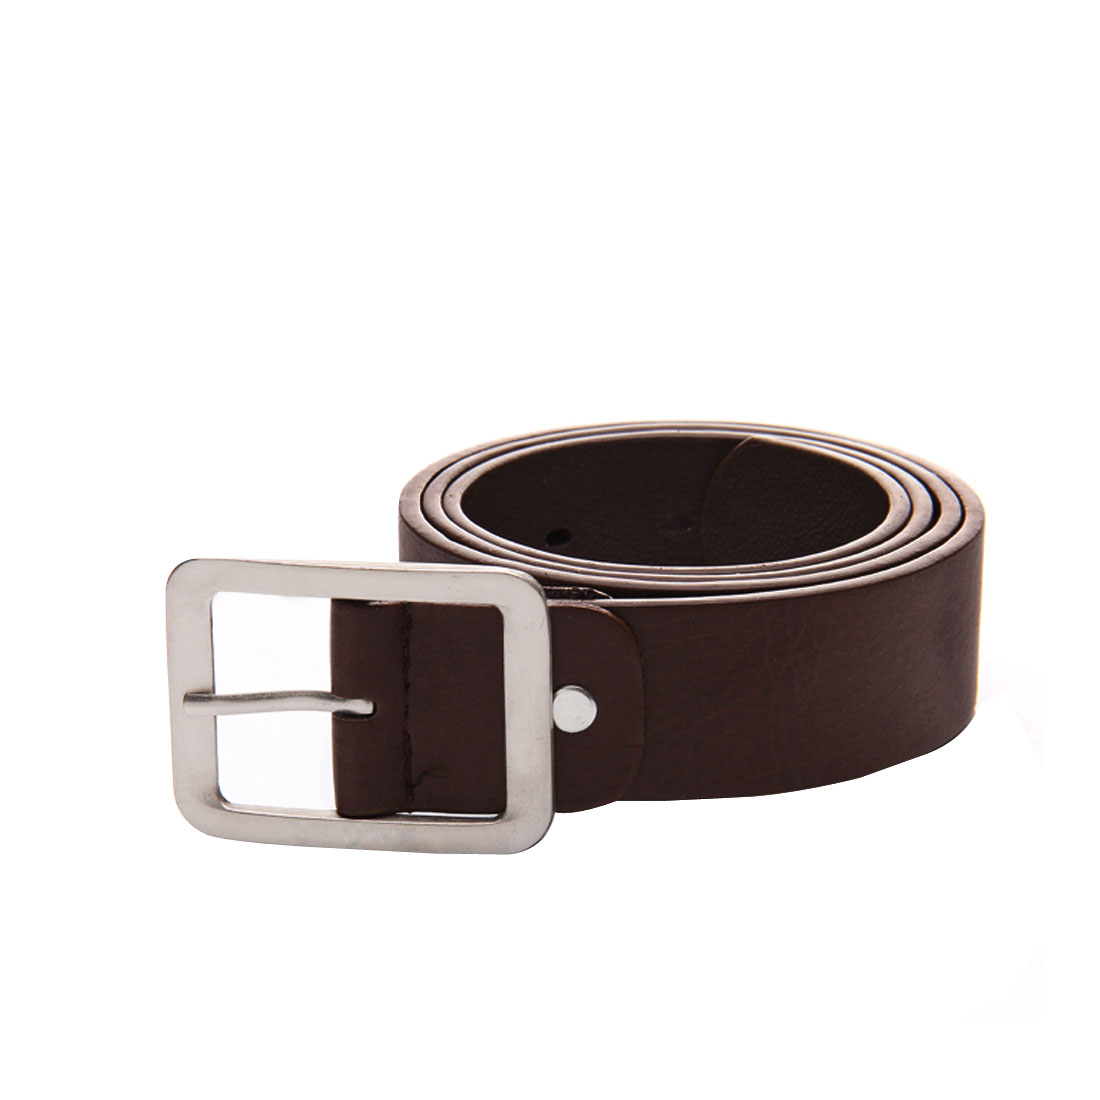 Unisex Coffee Color Faux Leather Adjustable Single Pin Buckle Belt Band